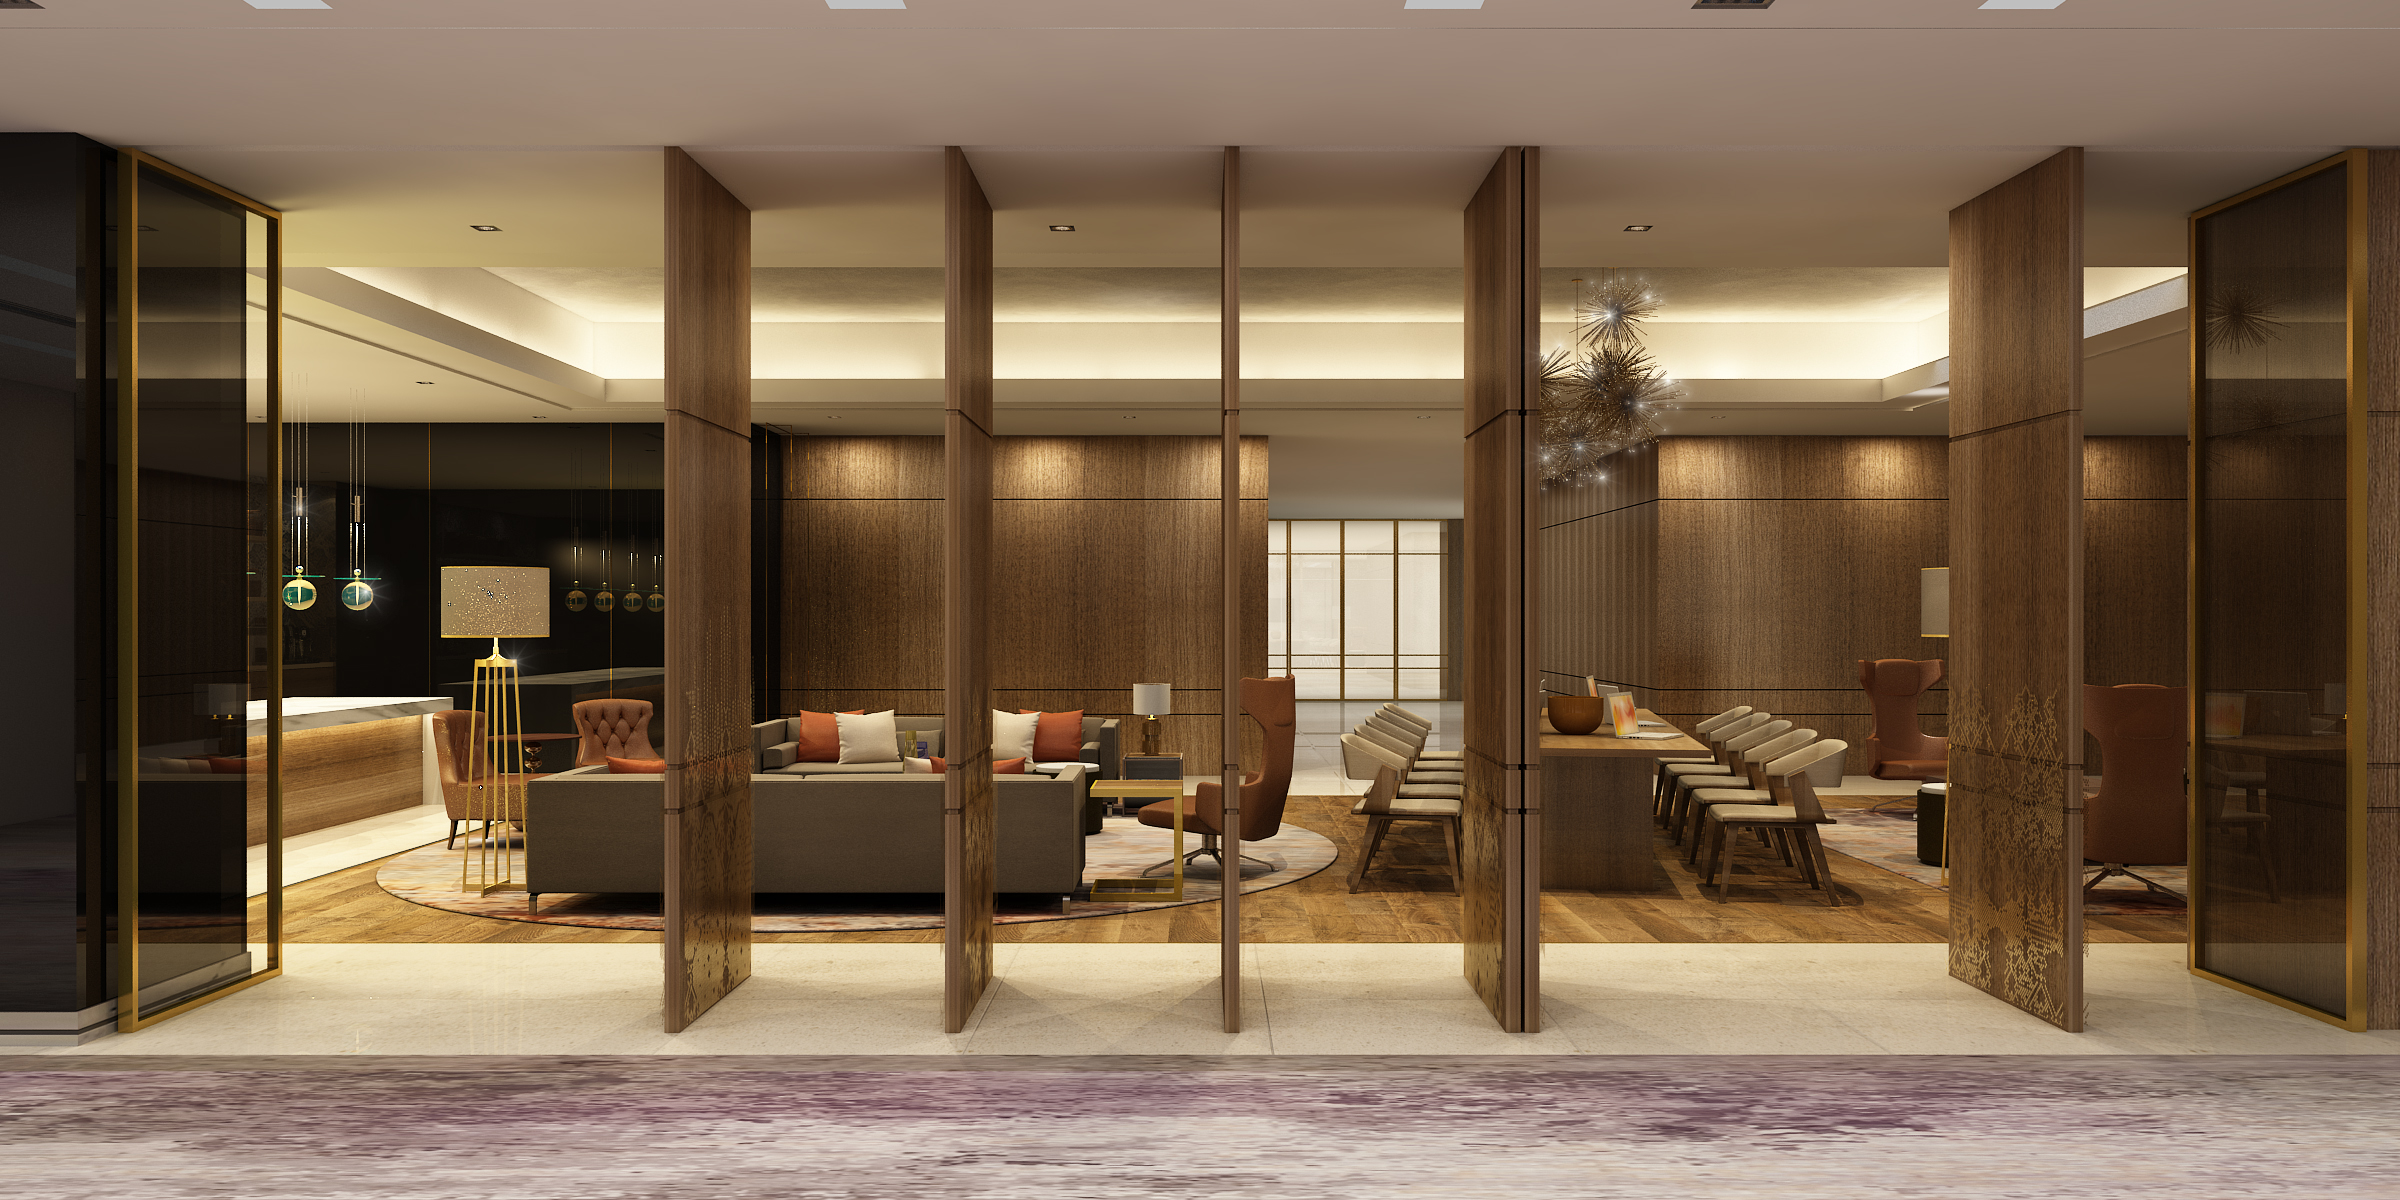 Hyatt Regency Hotel Interior Design Projects